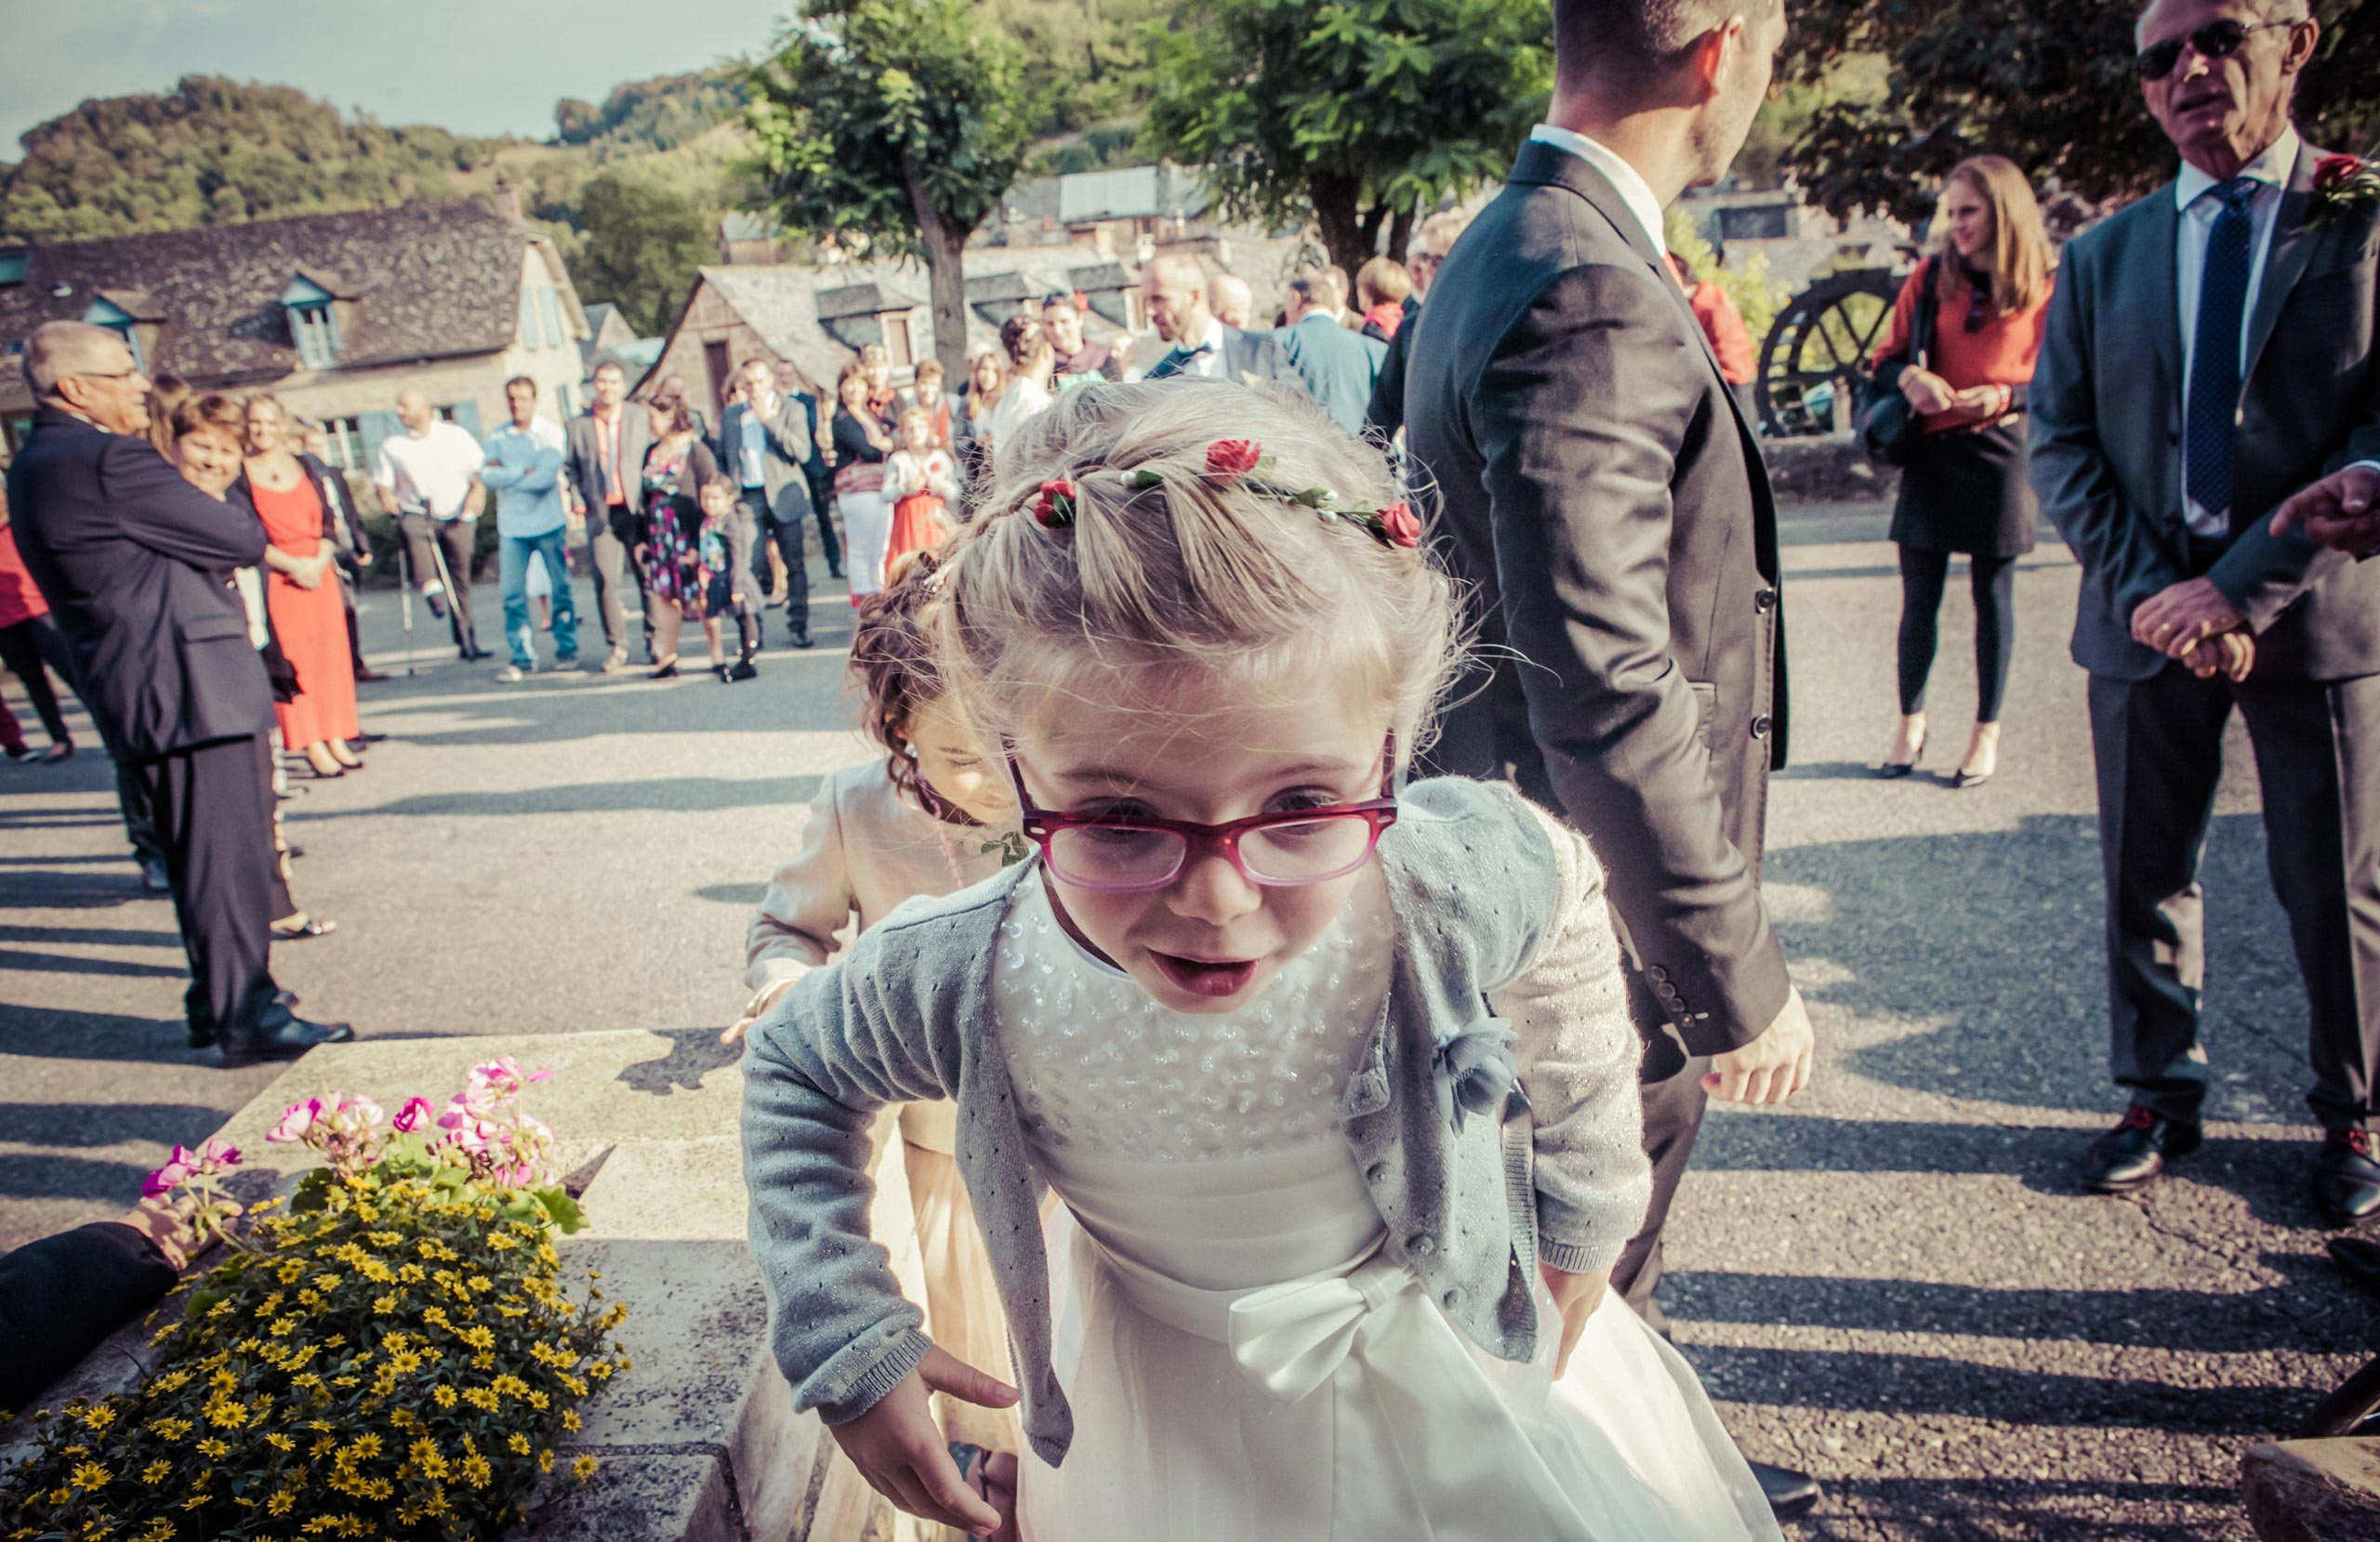 Mariage Photo Video Photographe Aveyron Tarn Garonne Montpellier